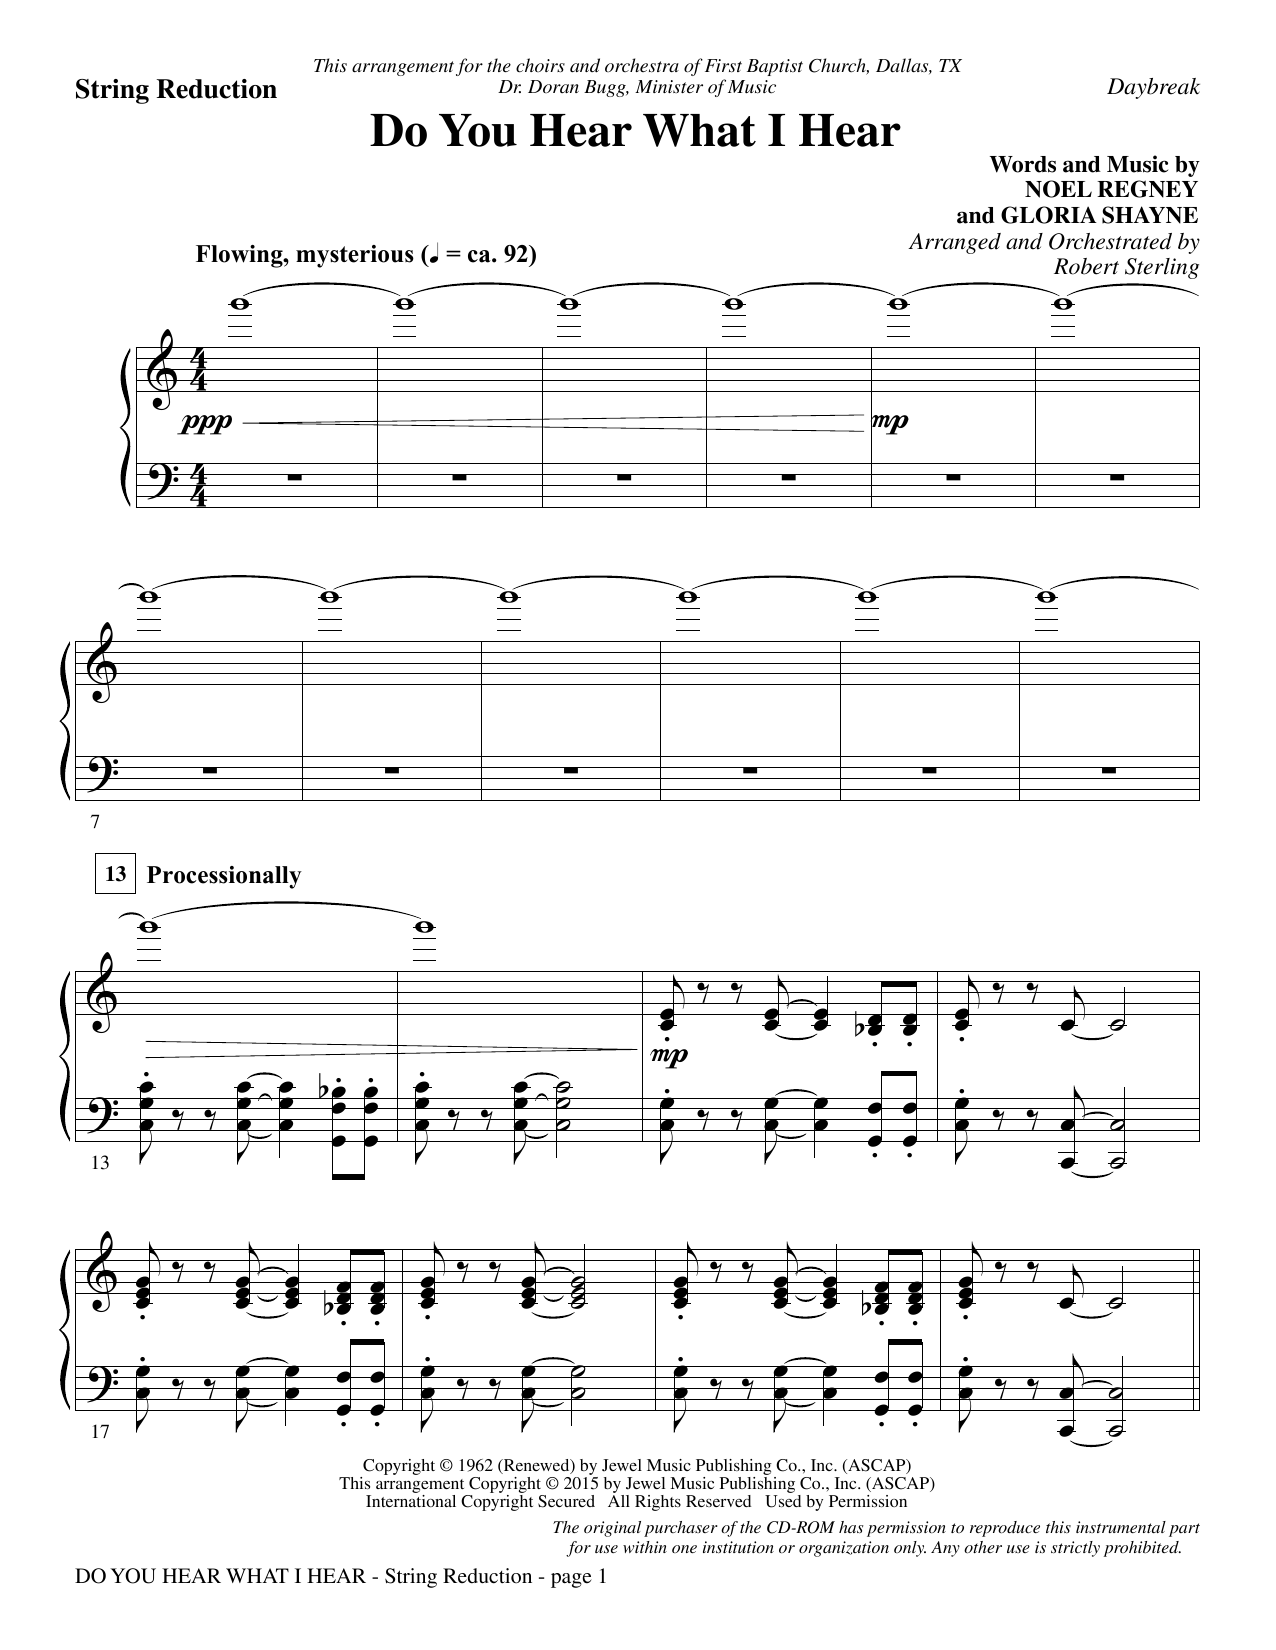 Do You Hear What I Hear - Keyboard String Reduction Sheet Music